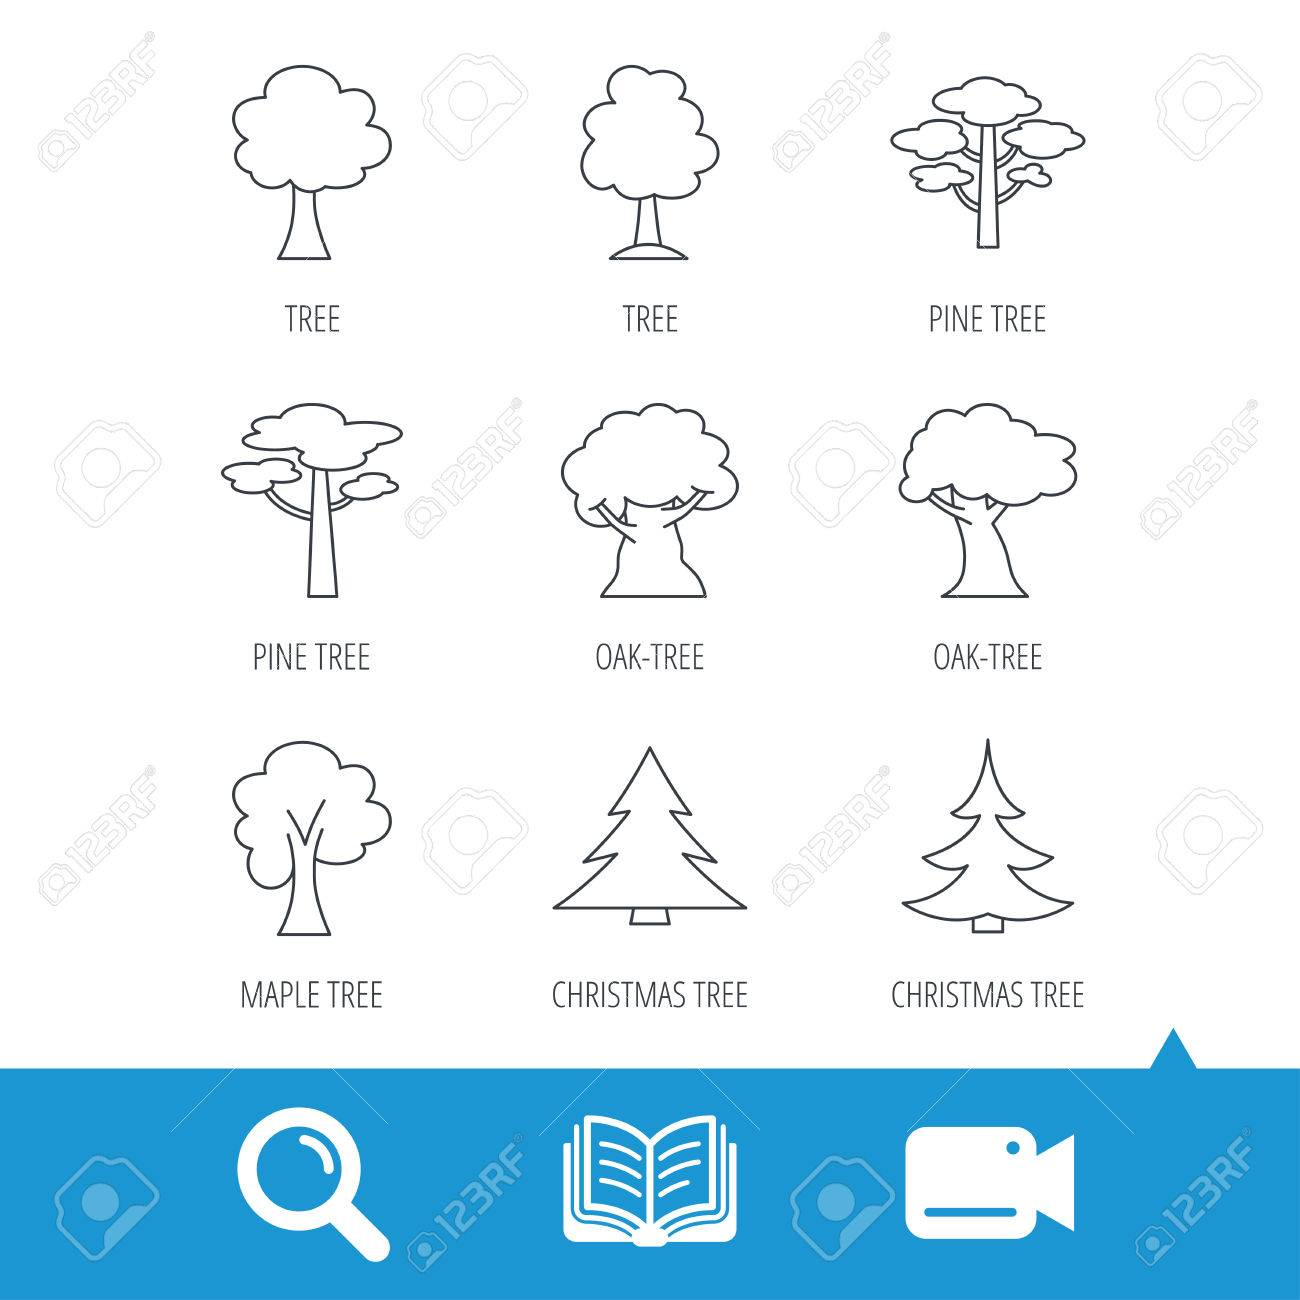 Maple Tree Diagram Christmas Photo Stock Vector Pine And Oak Icons Trees Linear Signs Forest Flat